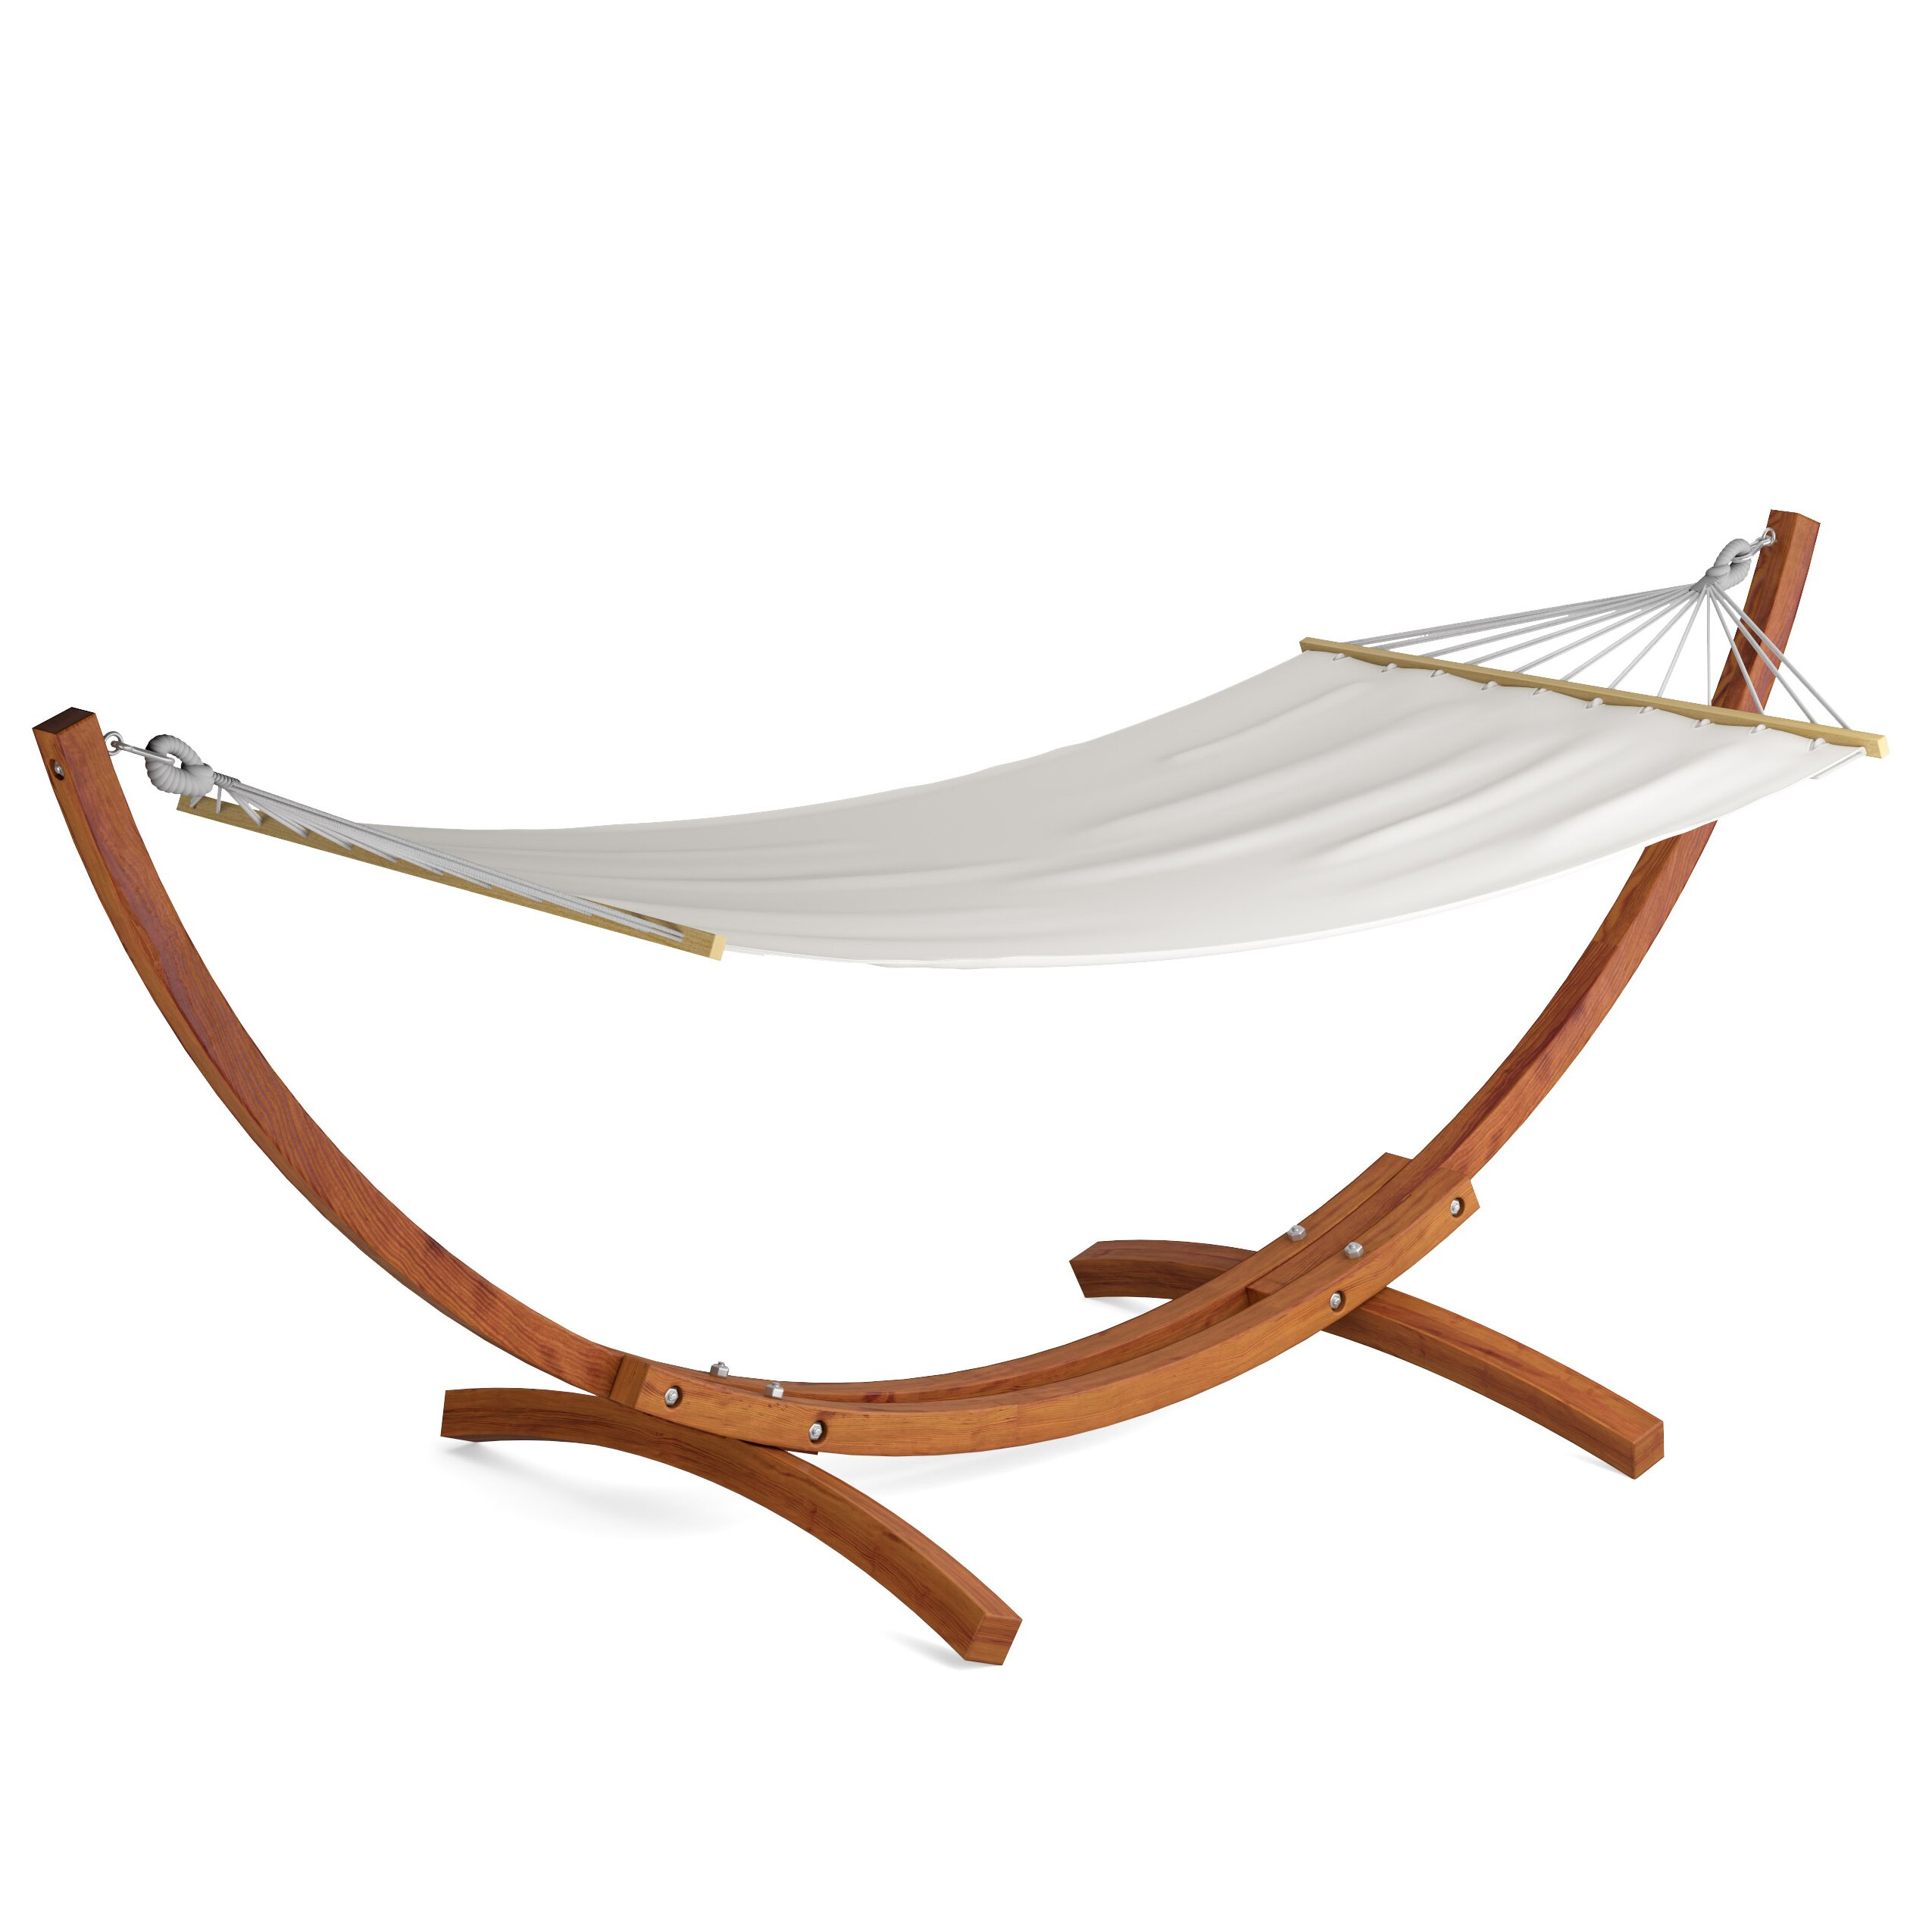 DCOR Design Wood Canyon Patio Hammock With Stand & Reviews